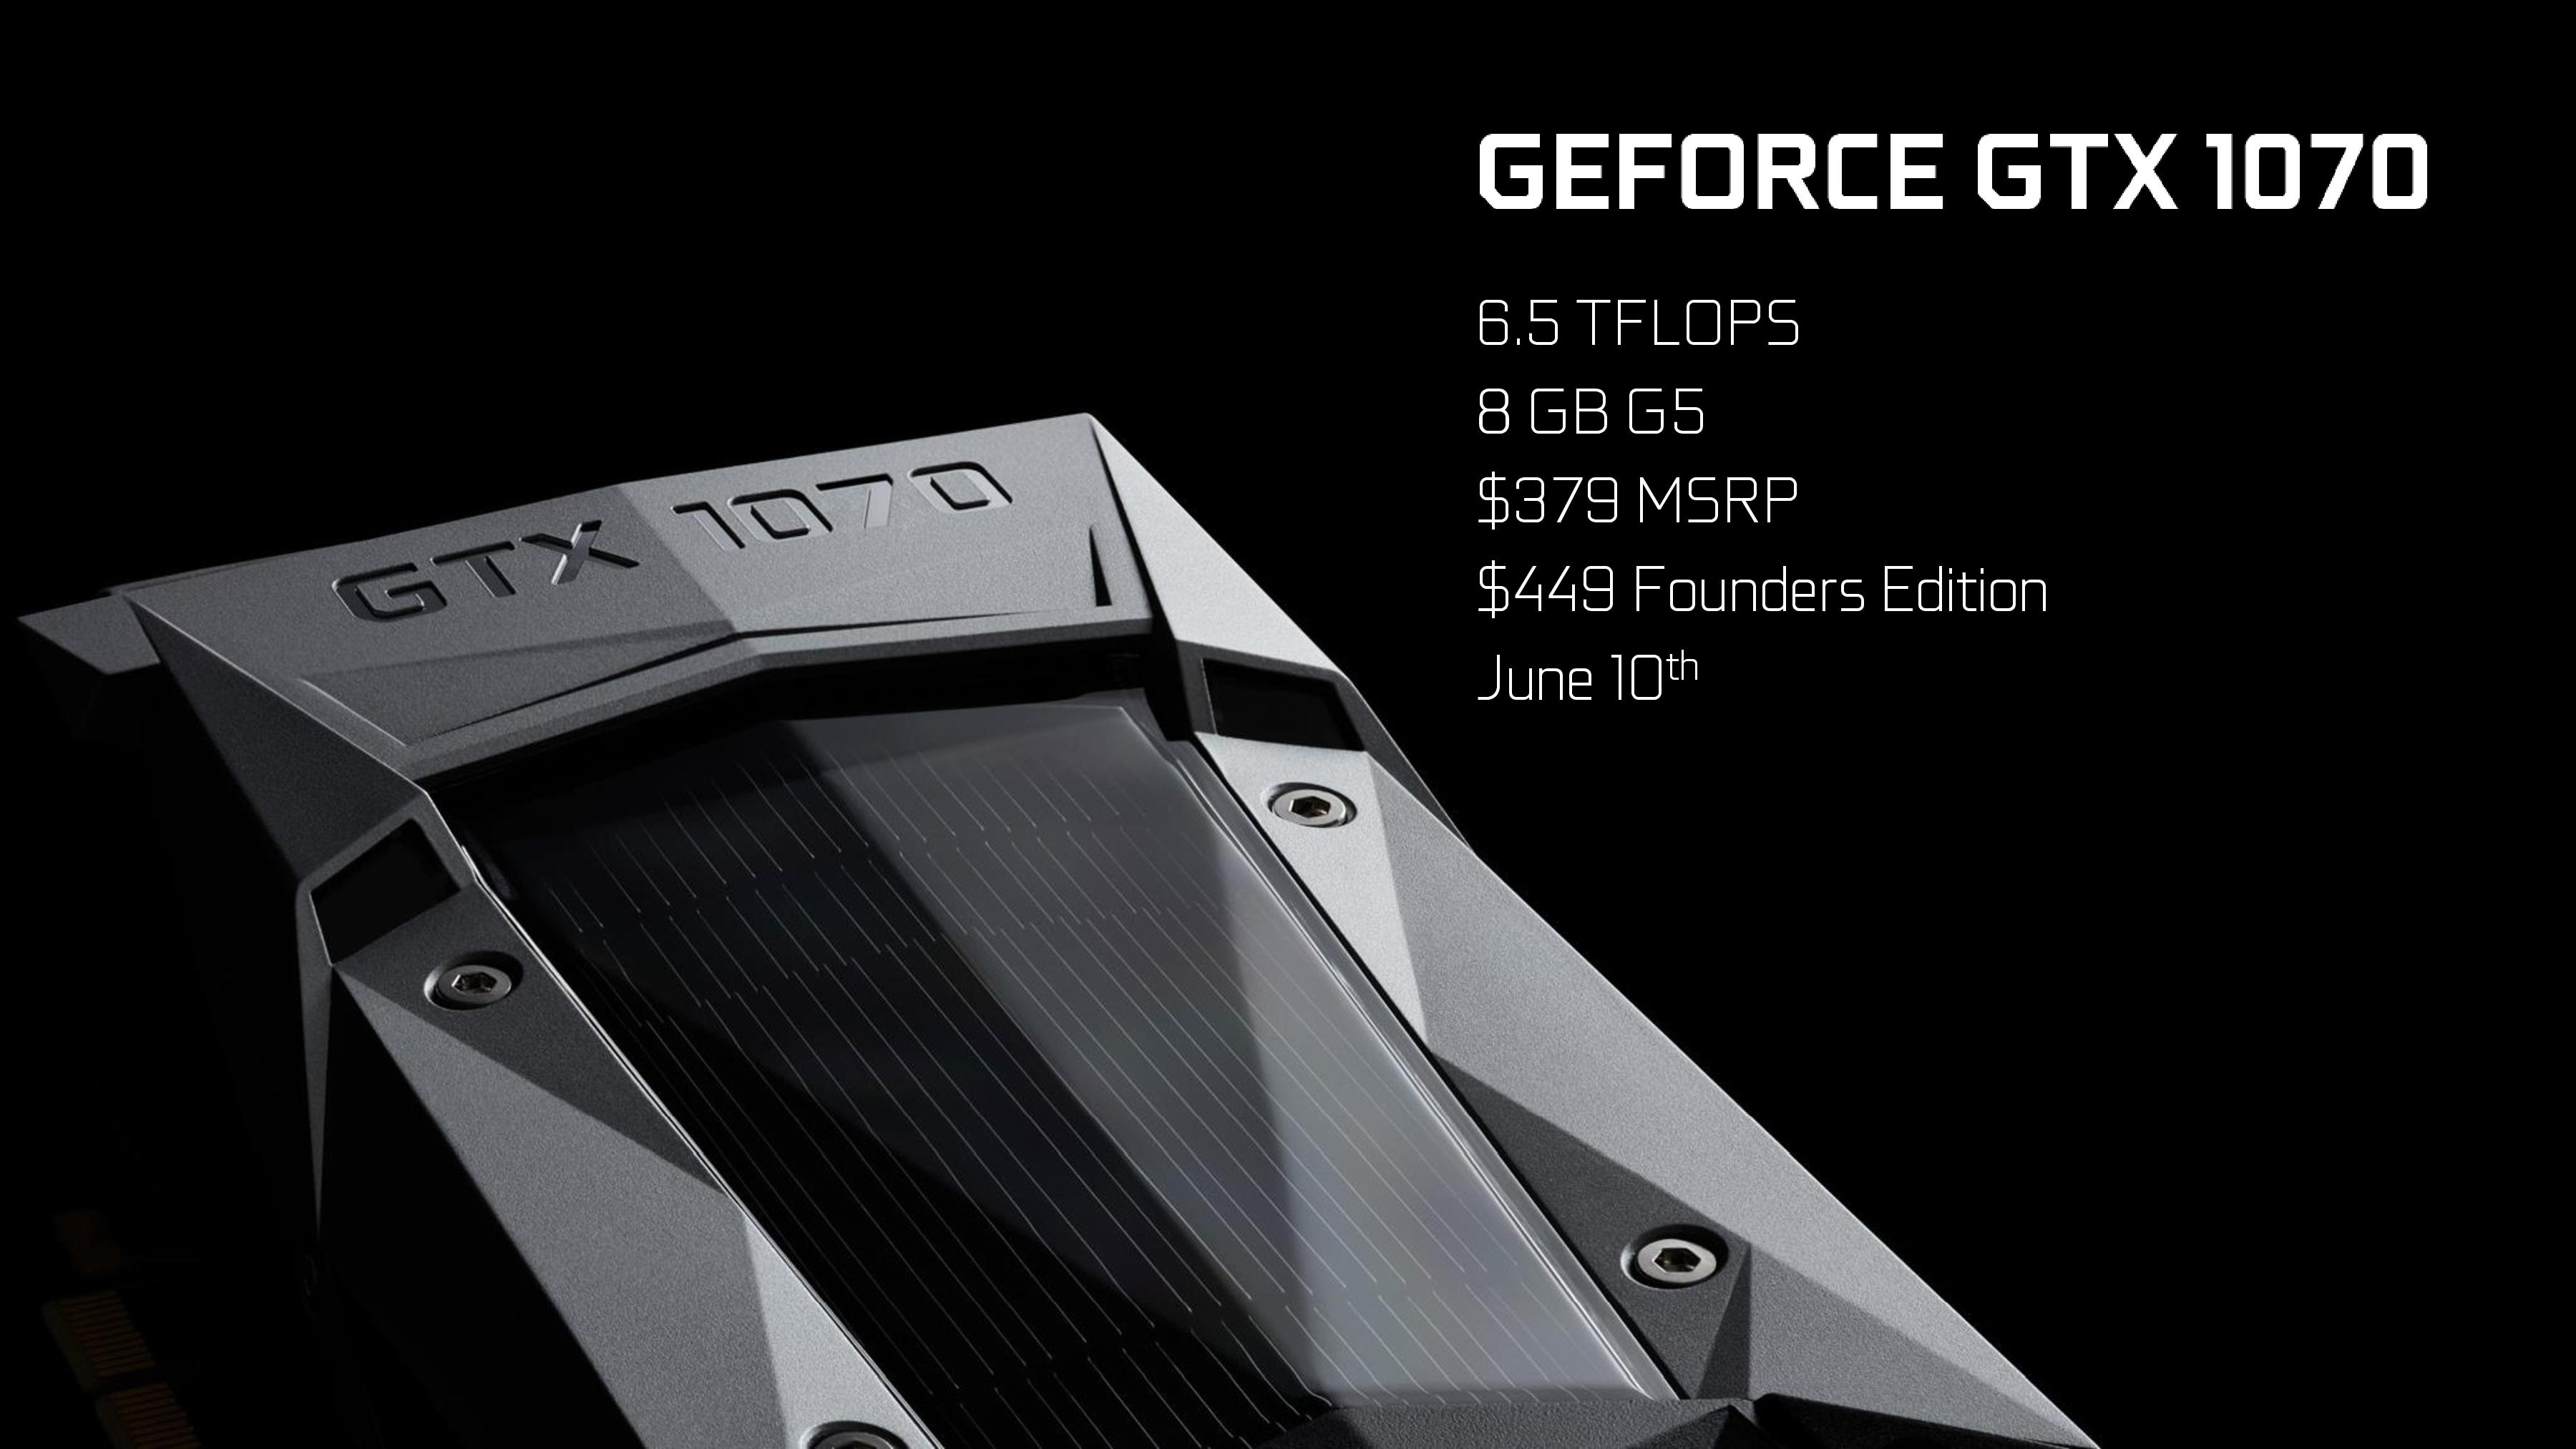 NVIDIA GeForce GTX 1070 Announced For $379 US - Faster Than